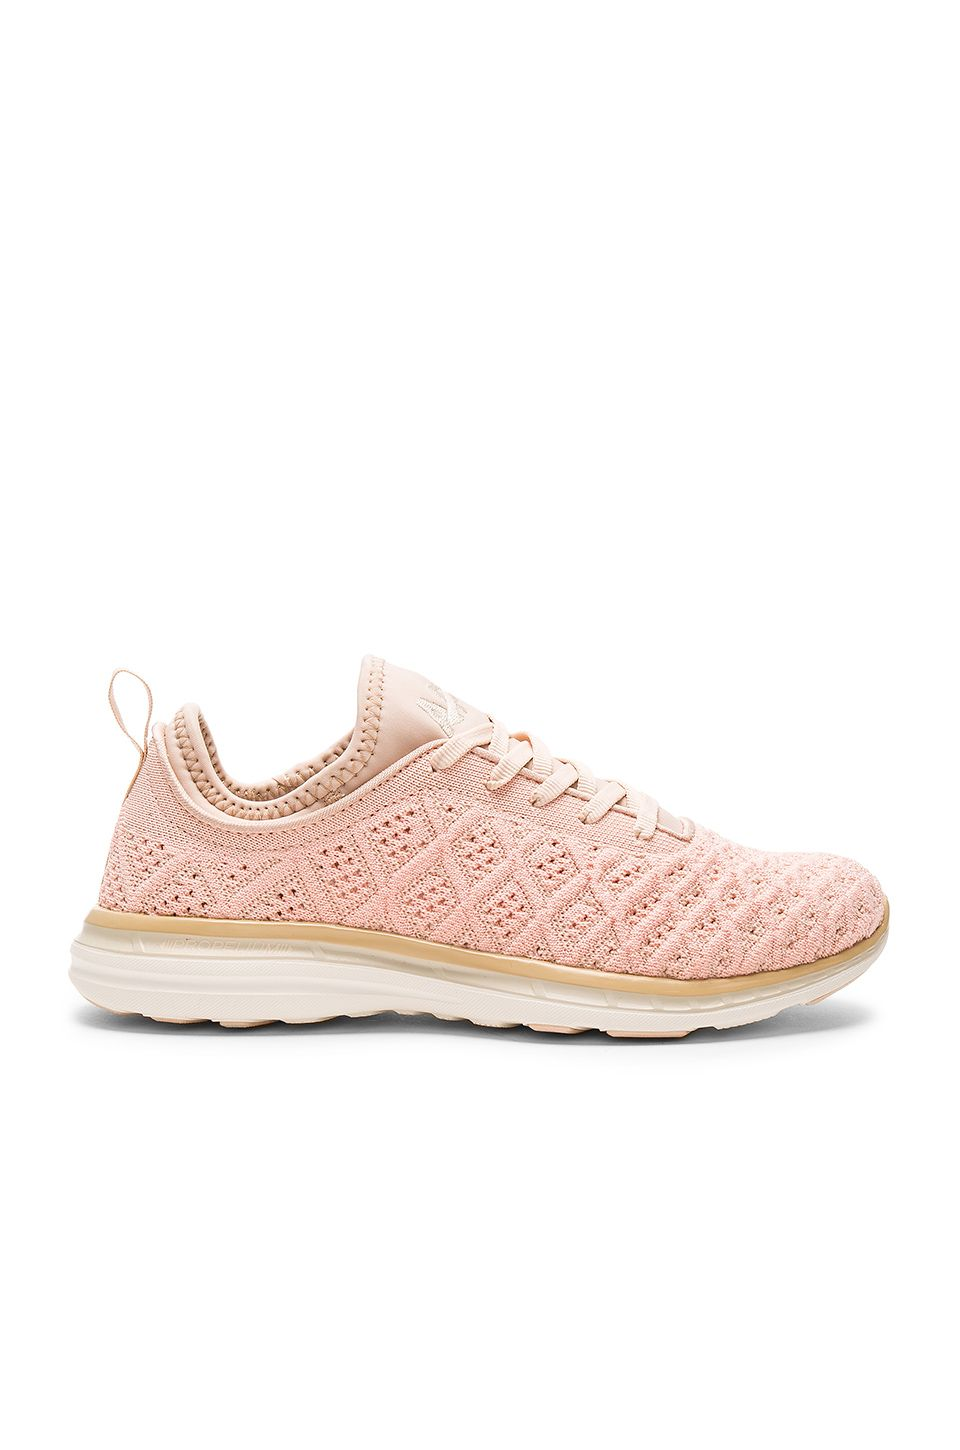 APL Athletic Propulsion Labs Apl? Athletic Propulsion Labs Woman Techloom Phantom Mesh Sneakers Blush Size 9.5 Outlet Discounts Enjoy Cheap Price Buy Cheap Websites Buy Cheap Pre Order 8sLFnki